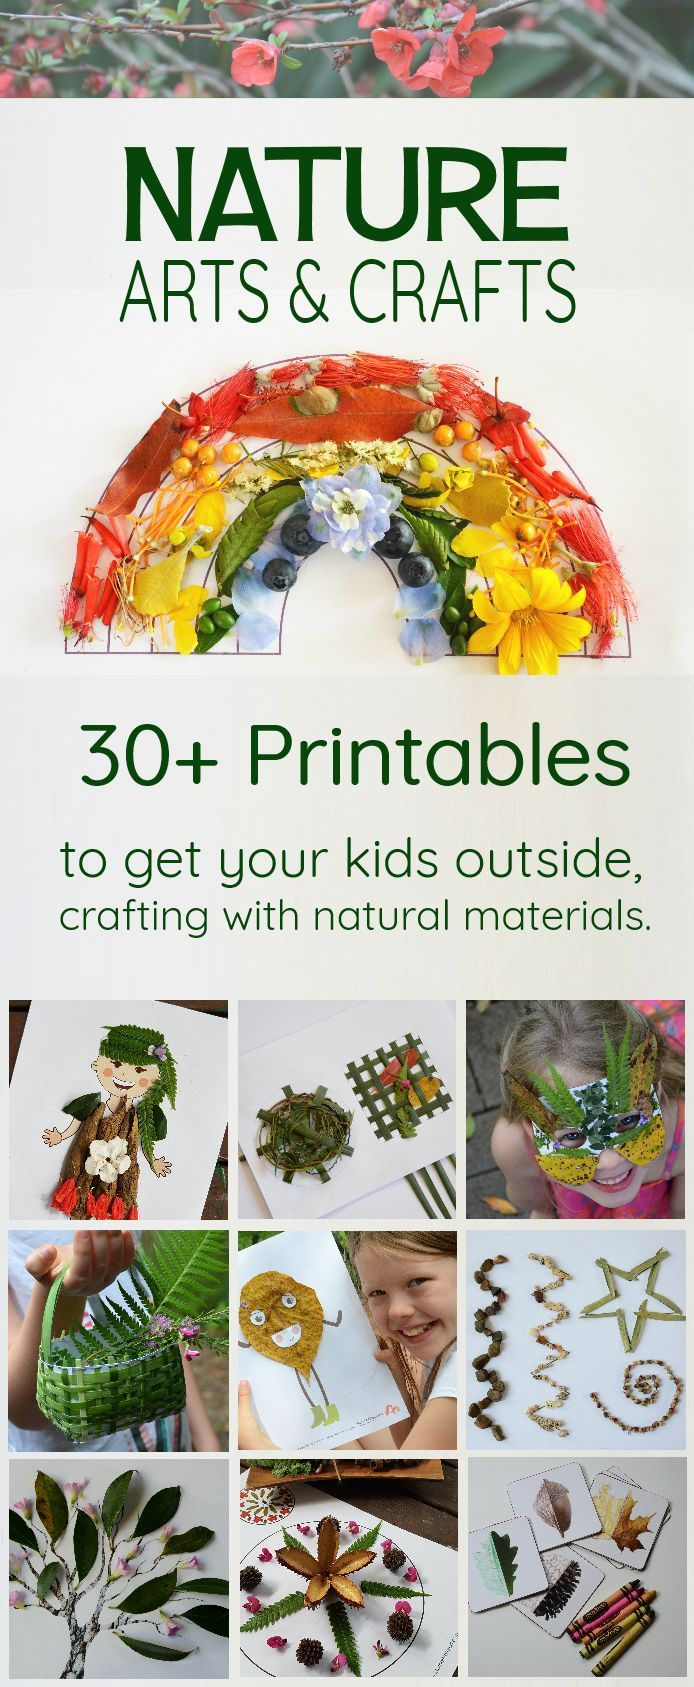 Nature Arts And Crafts Printables Craft Ideas Kid Stuff Forest